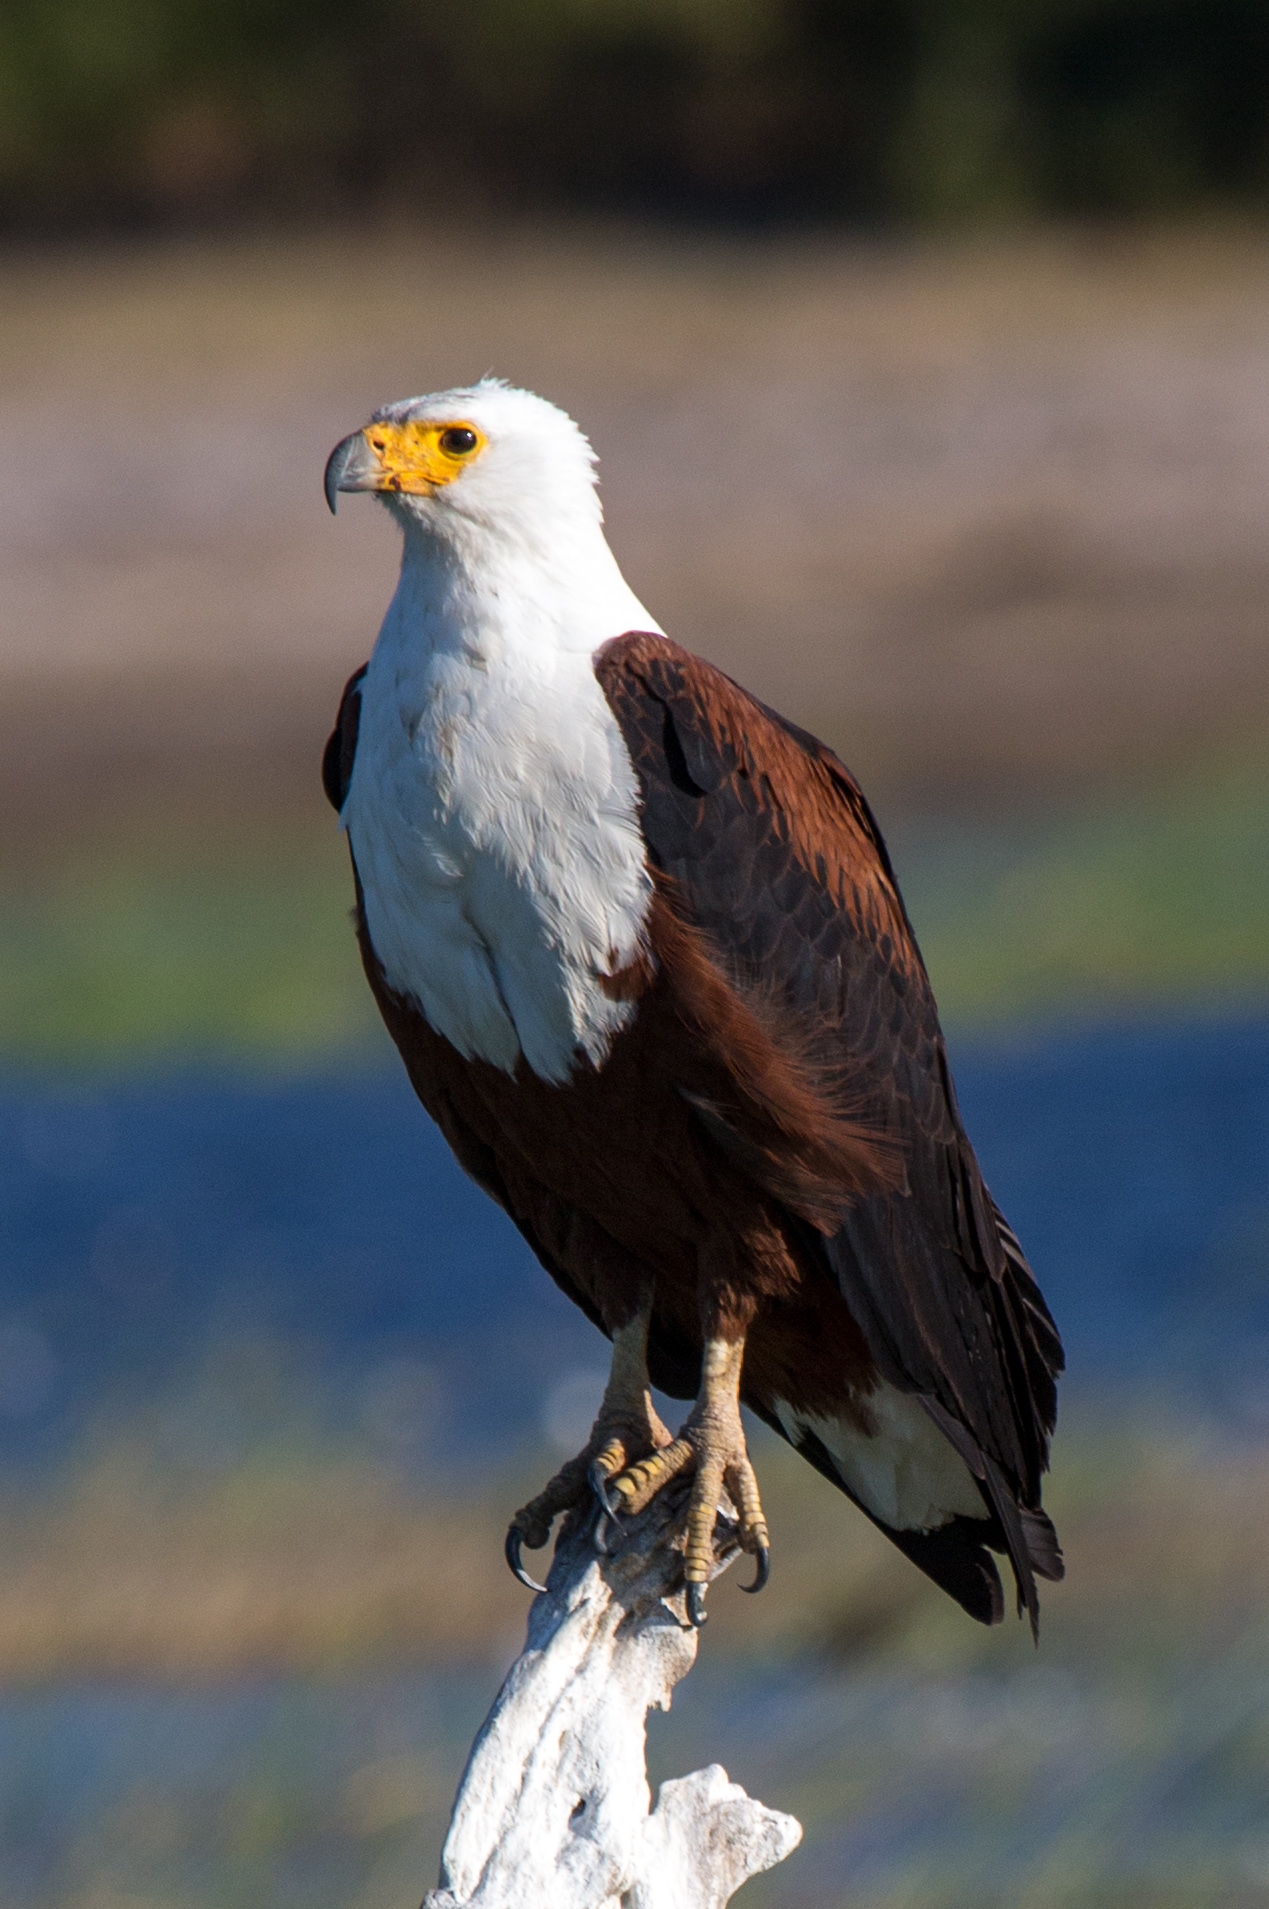 African fish eagles were prominent throughout our trip. They look so majestic and imposing perched high on their lofts.